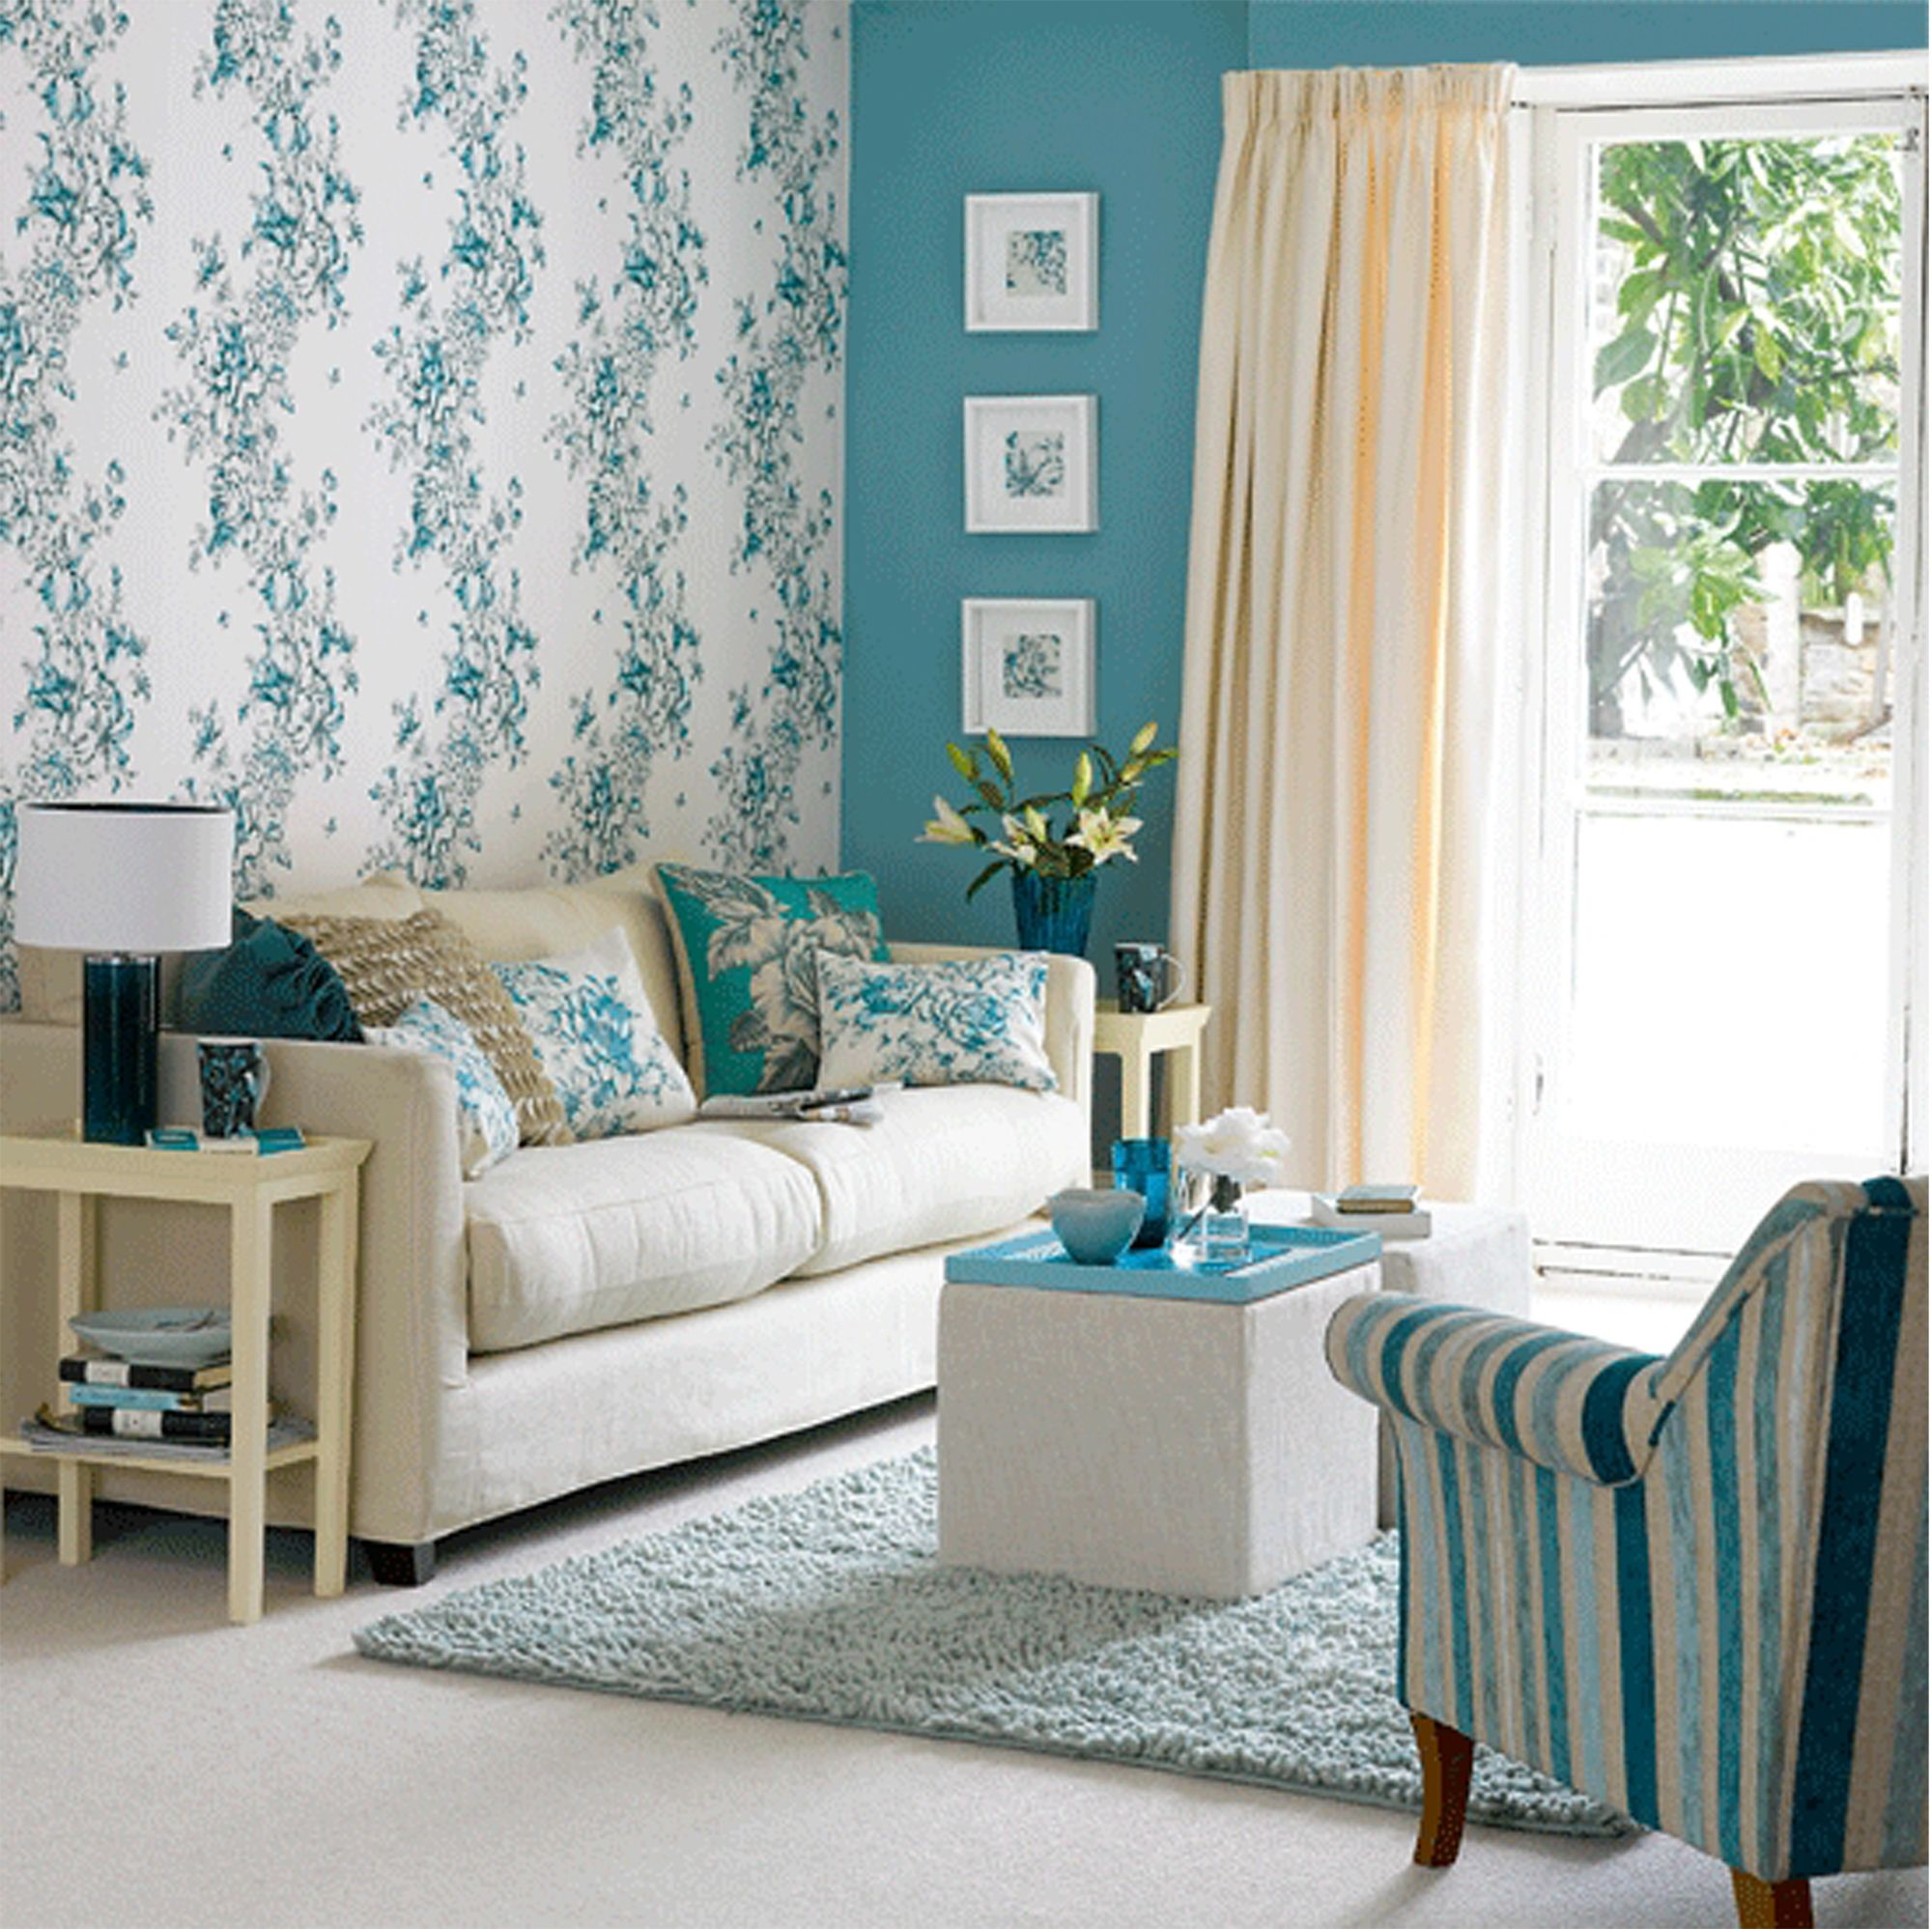 Teal and yellow living room - Retro Floral Wallpaper Design Ideas For Small Living Room With Yellow Curtains